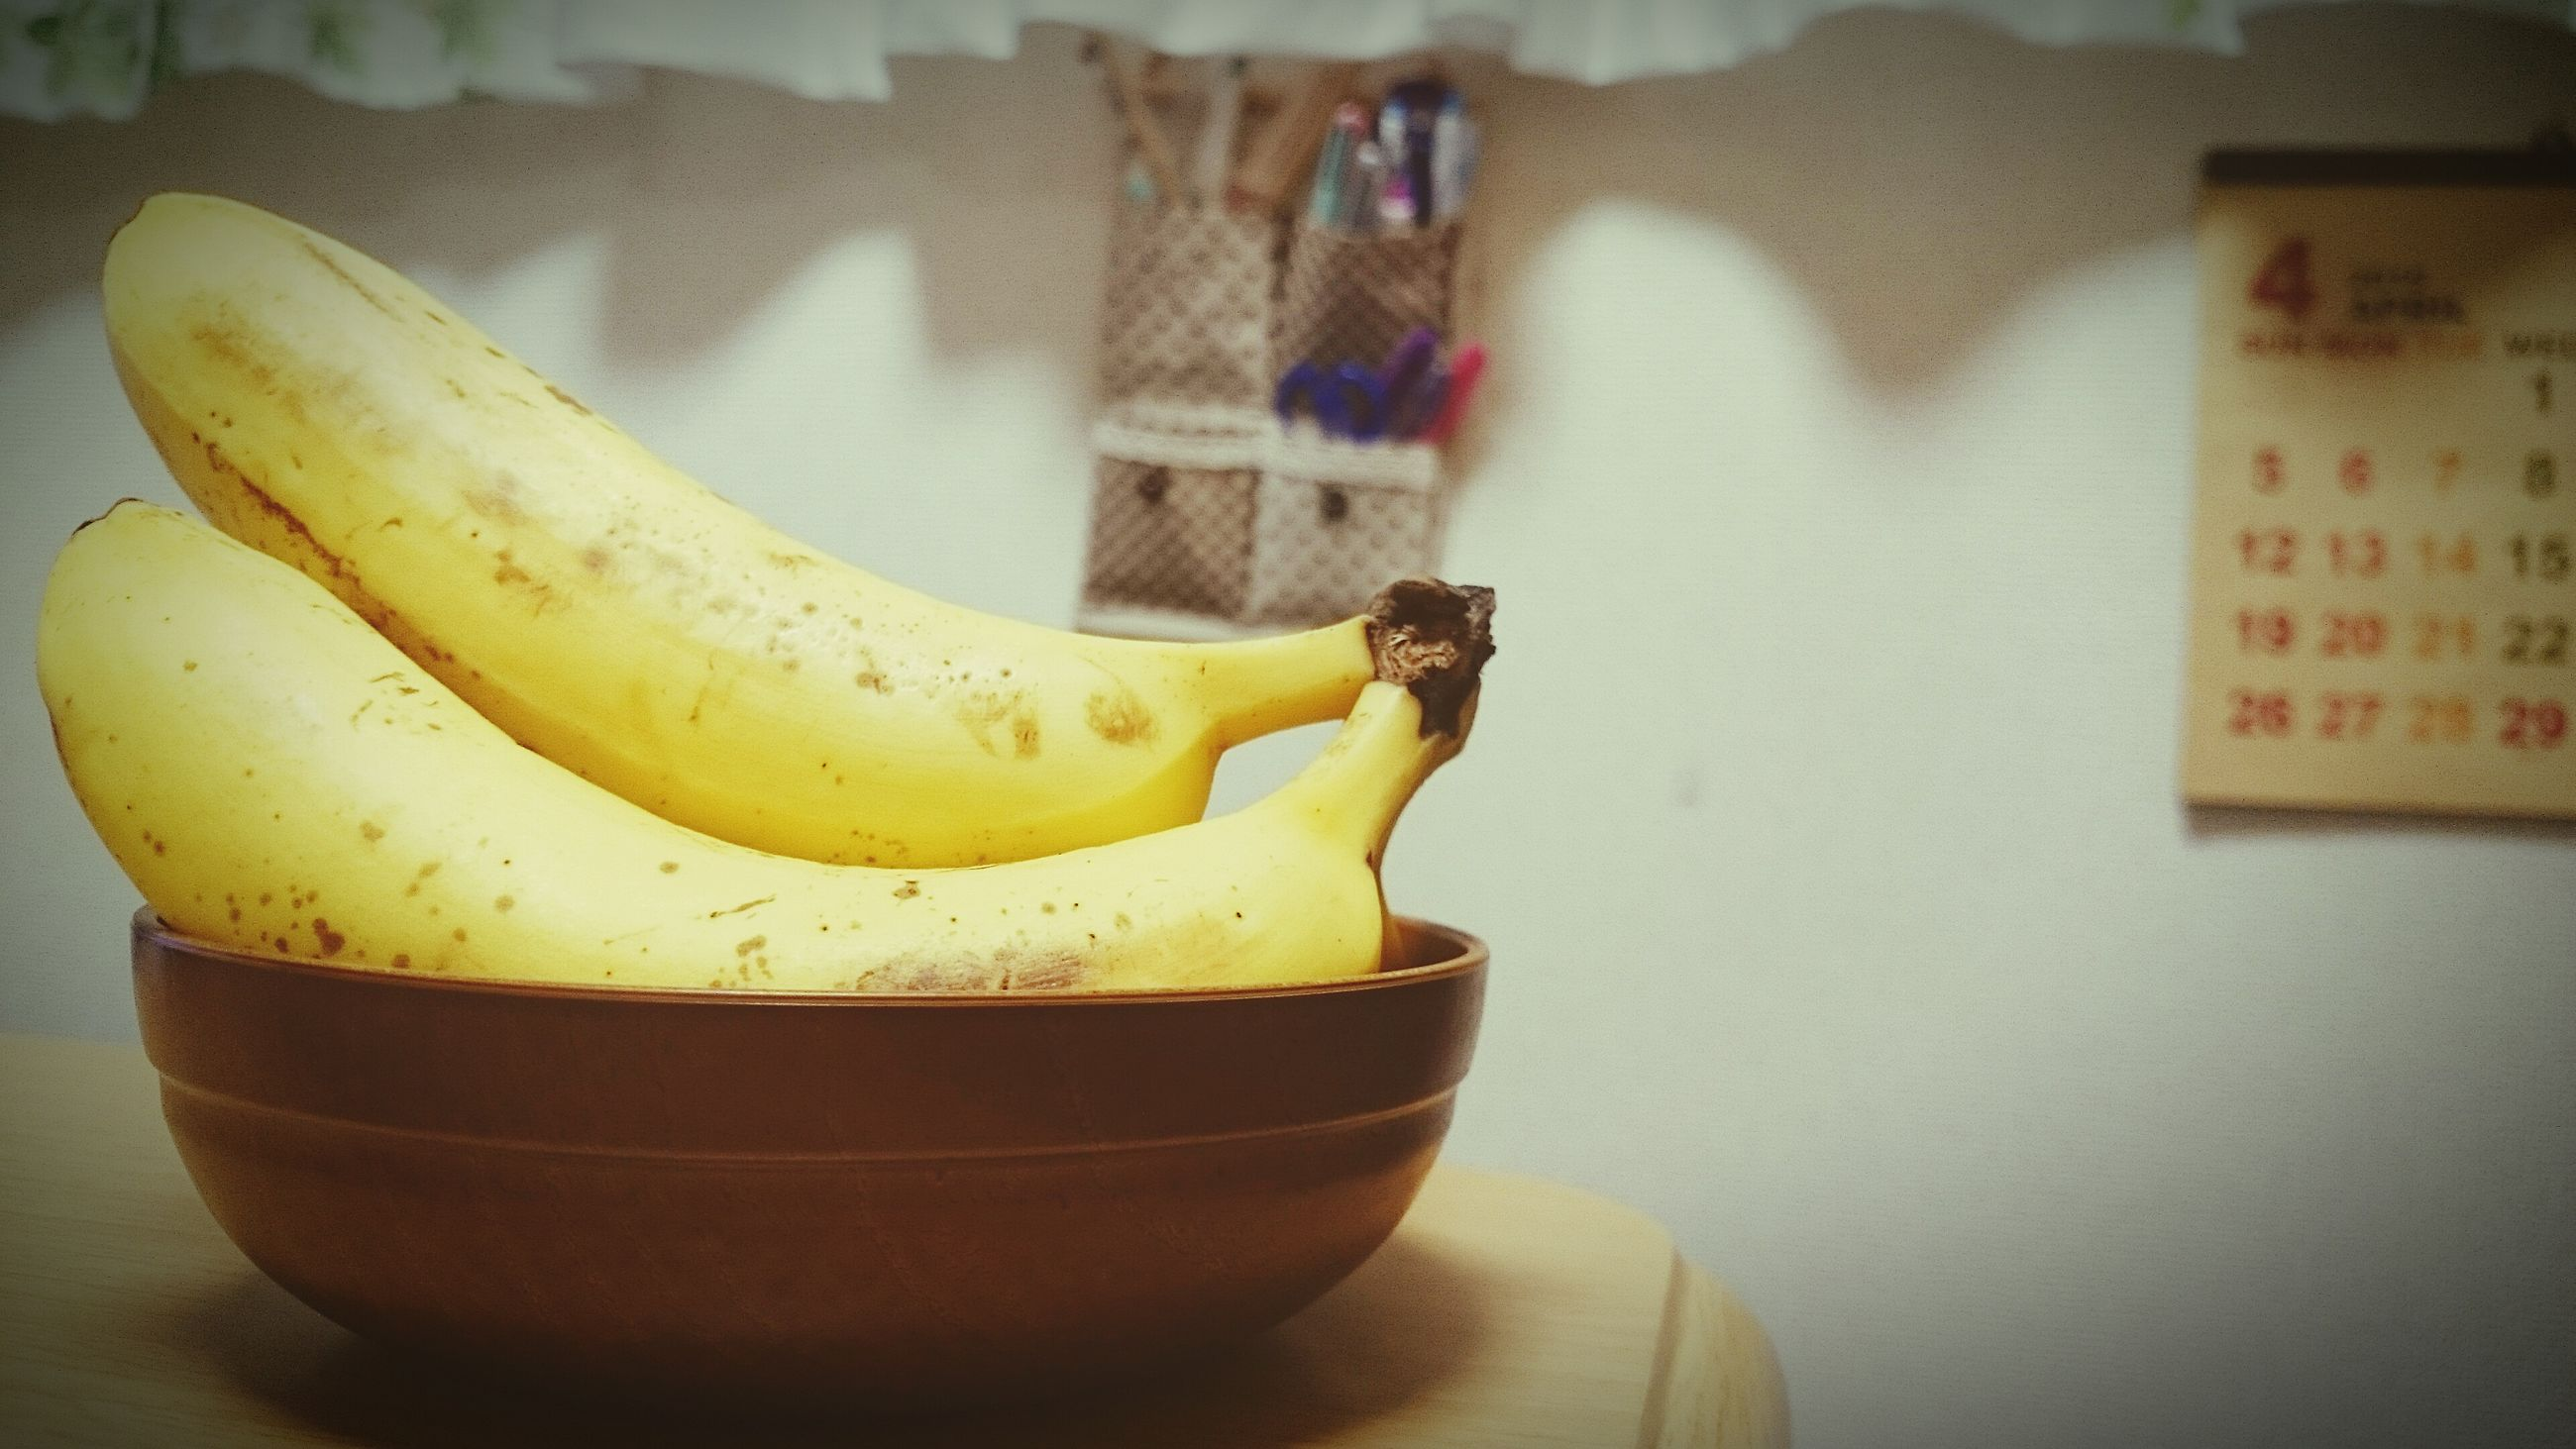 indoors, food and drink, freshness, food, still life, close-up, table, yellow, healthy eating, focus on foreground, fruit, text, no people, plate, banana, container, western script, selective focus, refreshment, home interior